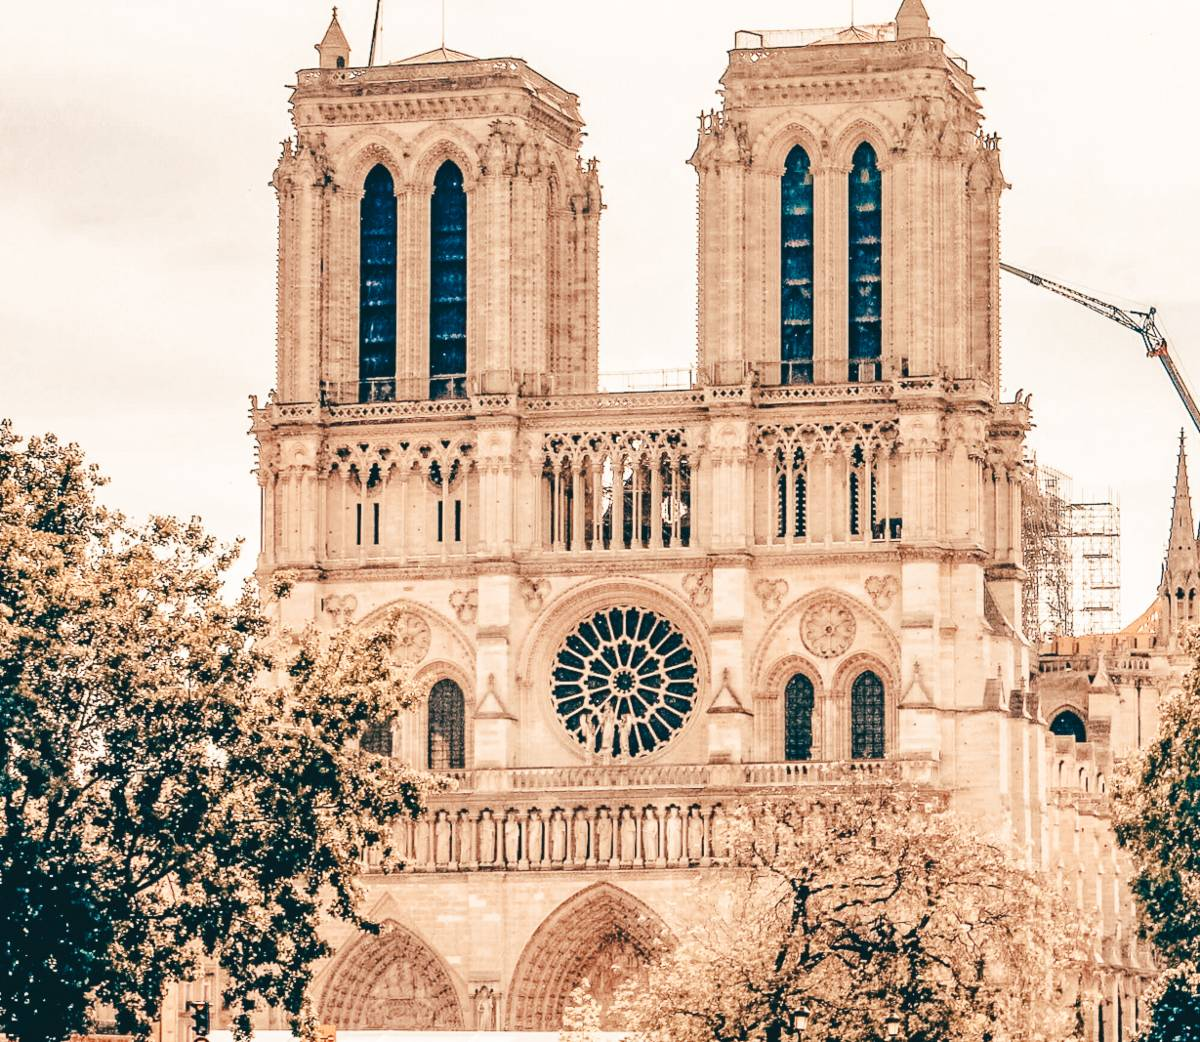 The notre dame cathedral during the day